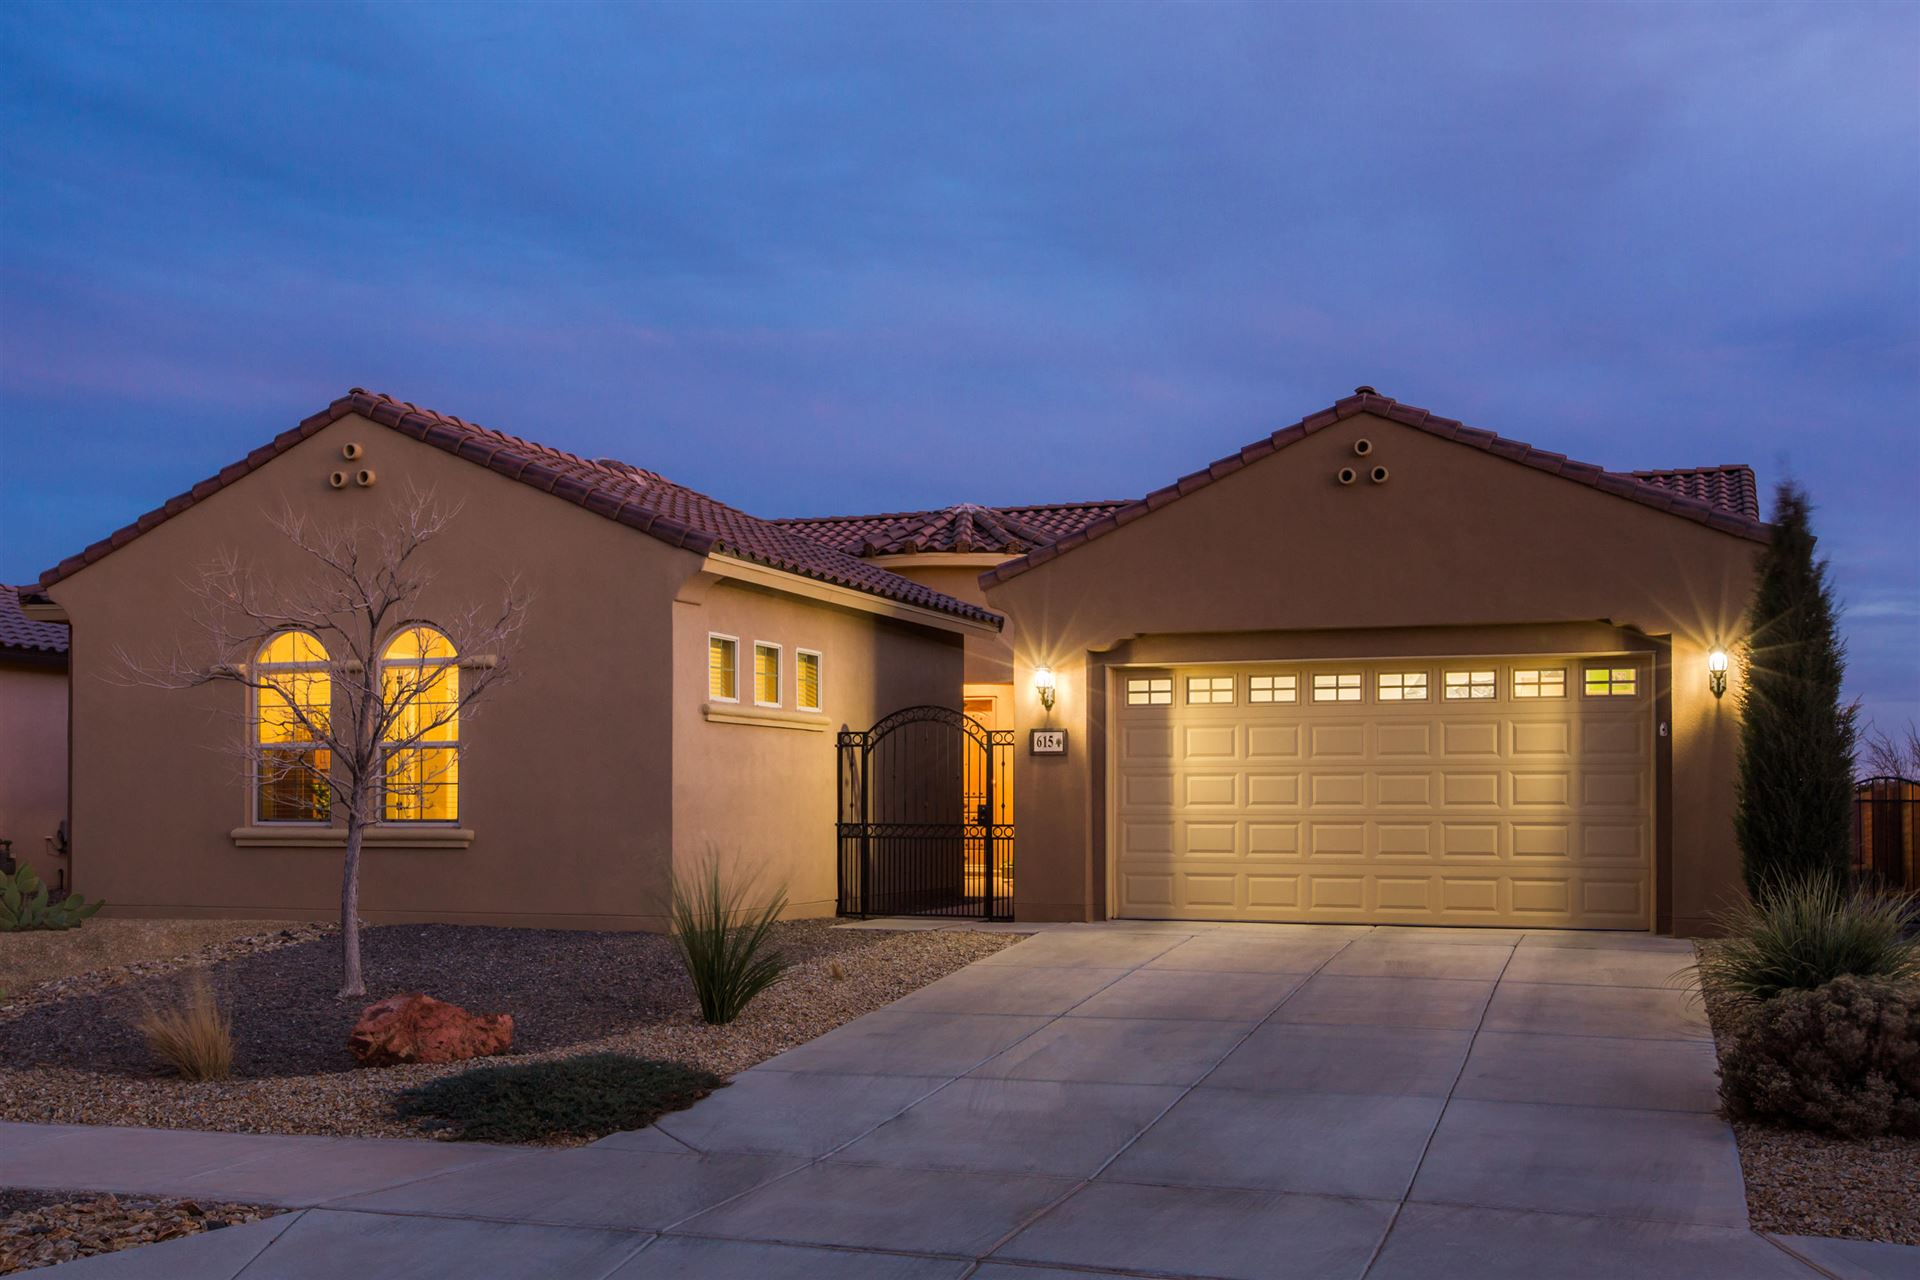 615 Vista Este Trail NE, Rio Rancho, NM 87144 - MLS#: 987225